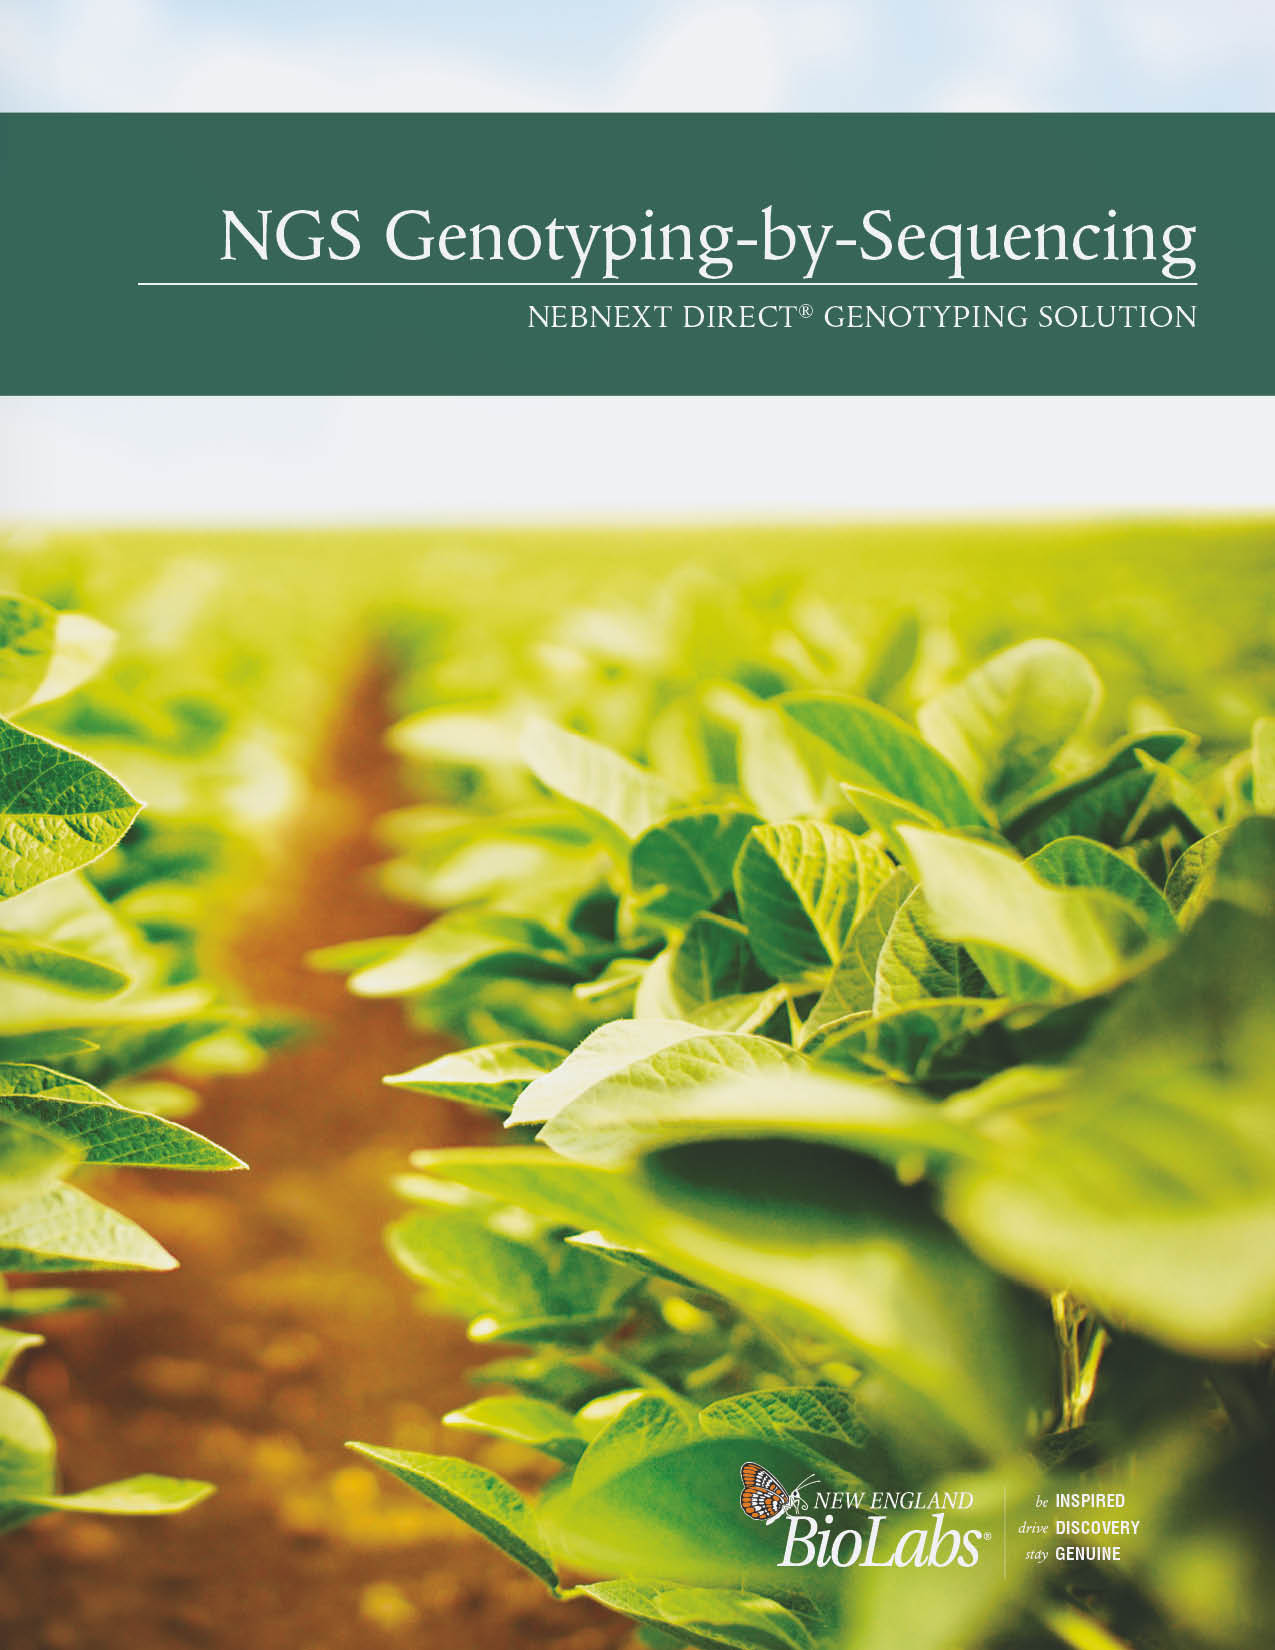 NEBNext Direct Genotyping Solution